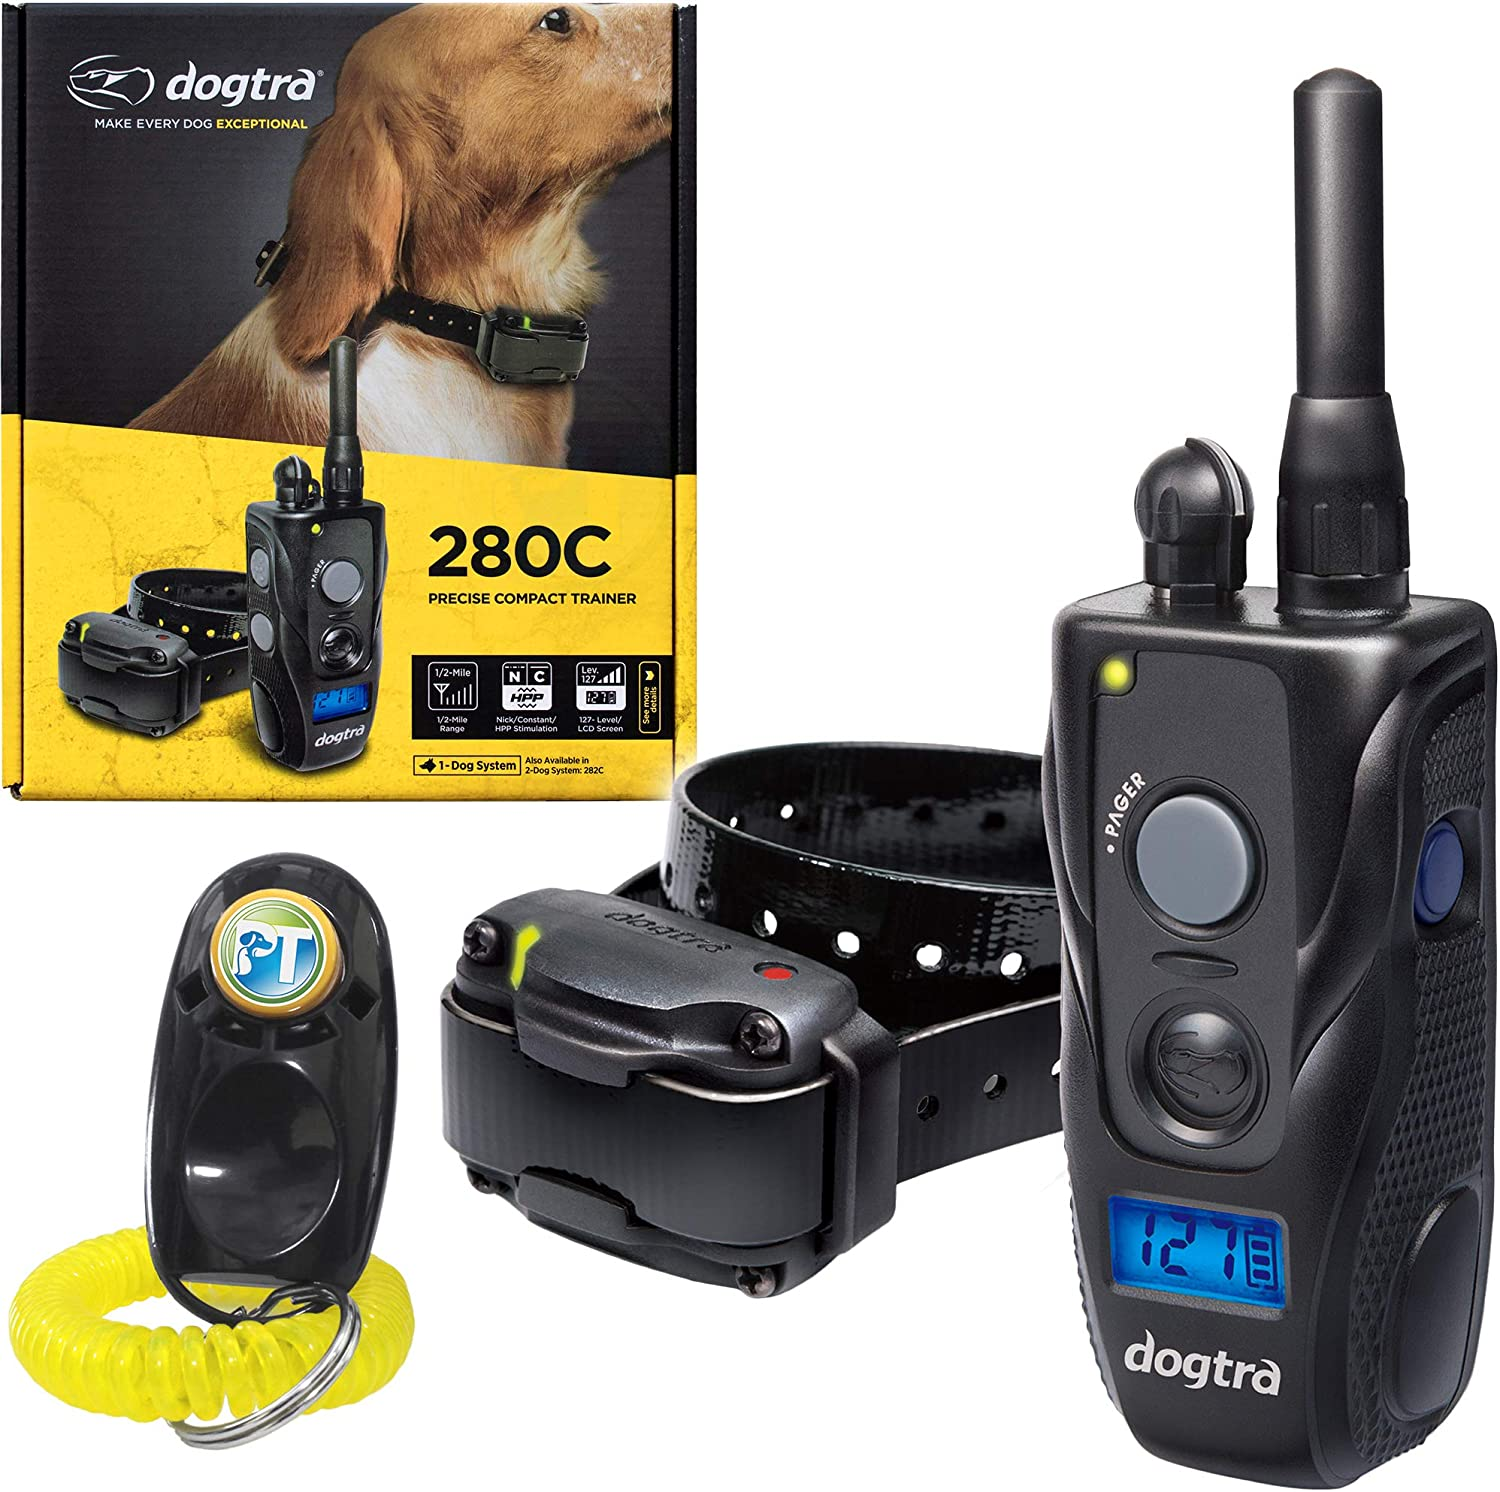 Dogtra 280C, 282C Remote Training Collar - 1/2 Mile Range, Waterproof, Rechargeable, Static, Vibration - Includes PetsTEK Dog Training Clicker